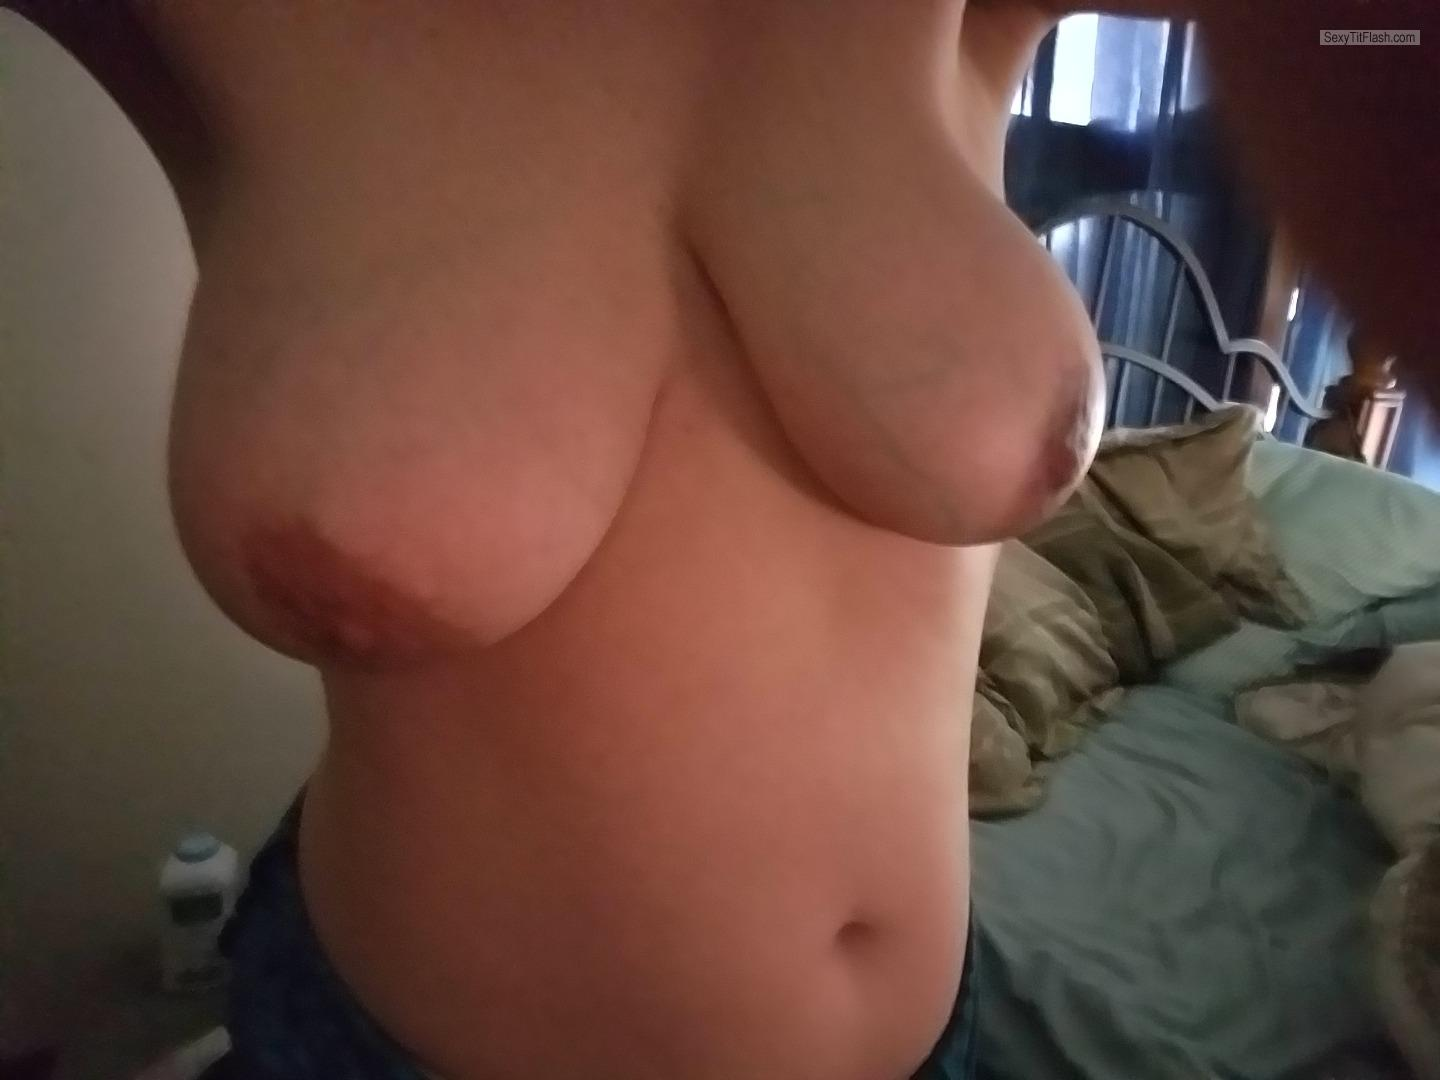 Tit Flash: My Big Tits (Selfie) - Bigtitsmarie from United States